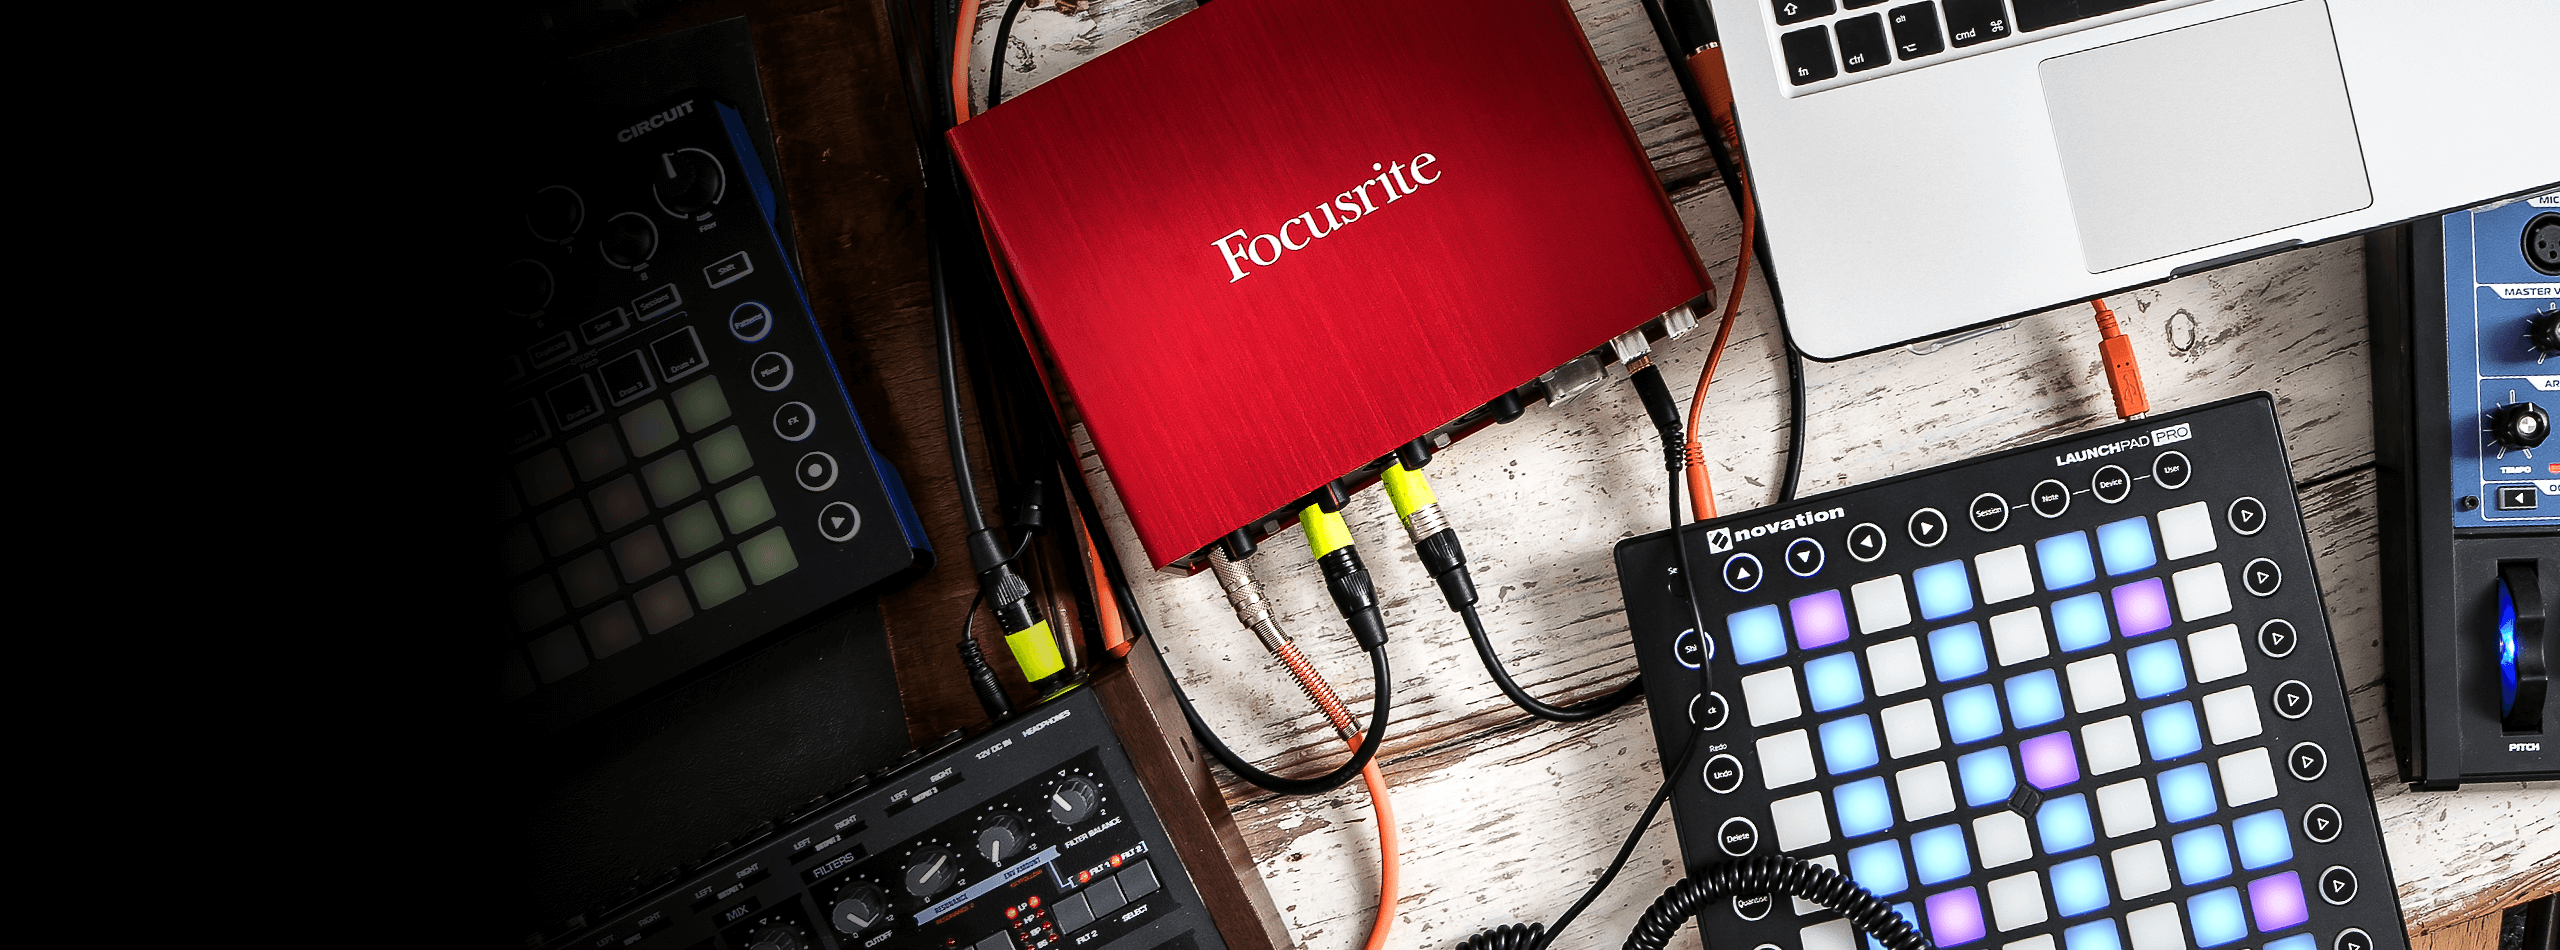 Focusrite and Novation products